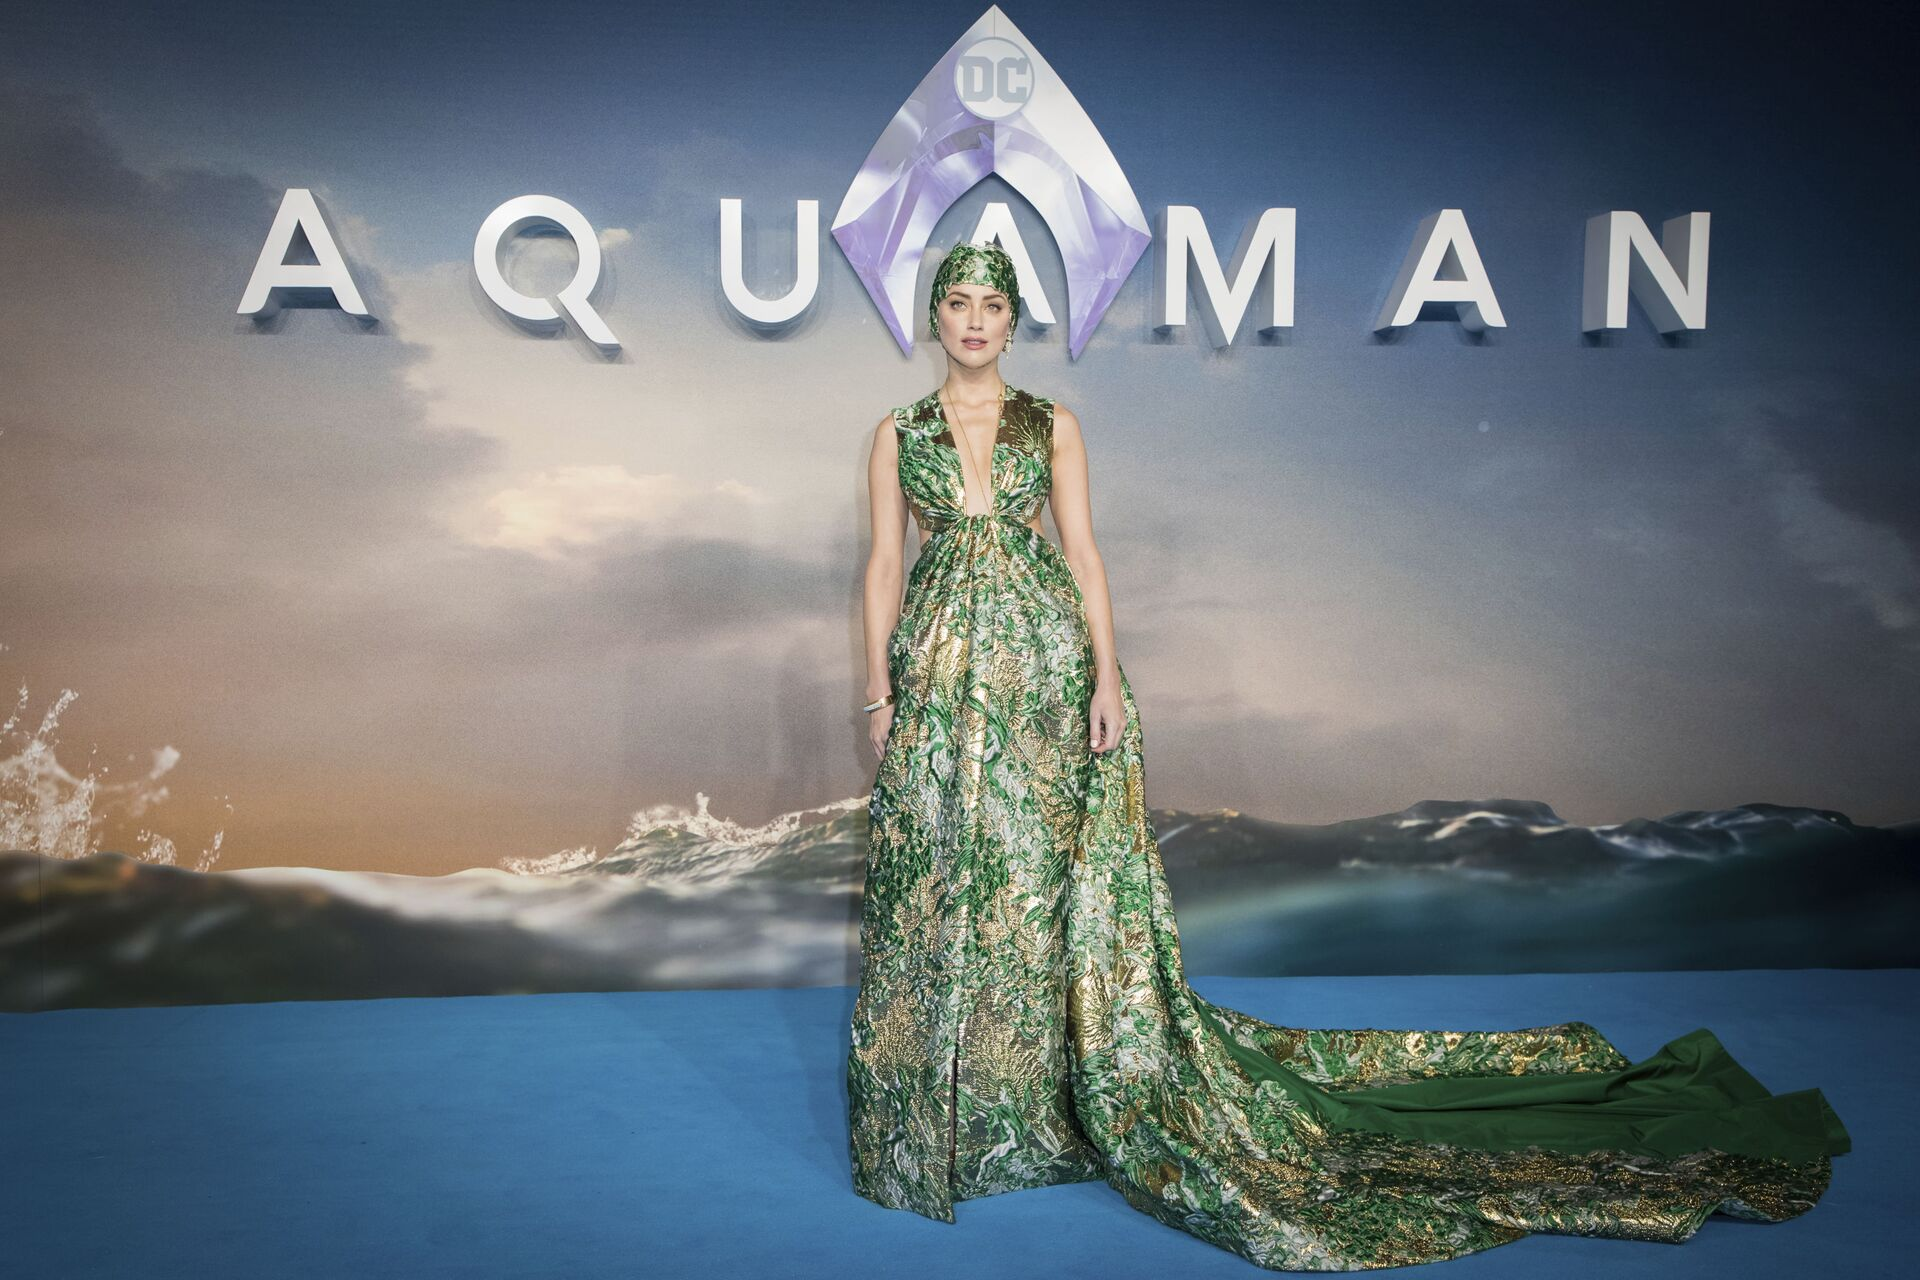 Actress Amber Heard poses for photographers upon arrival at the world premiere of the film 'Aquaman', in London, Monday, Nov. 26, 2018 - Sputnik International, 1920, 07.09.2021